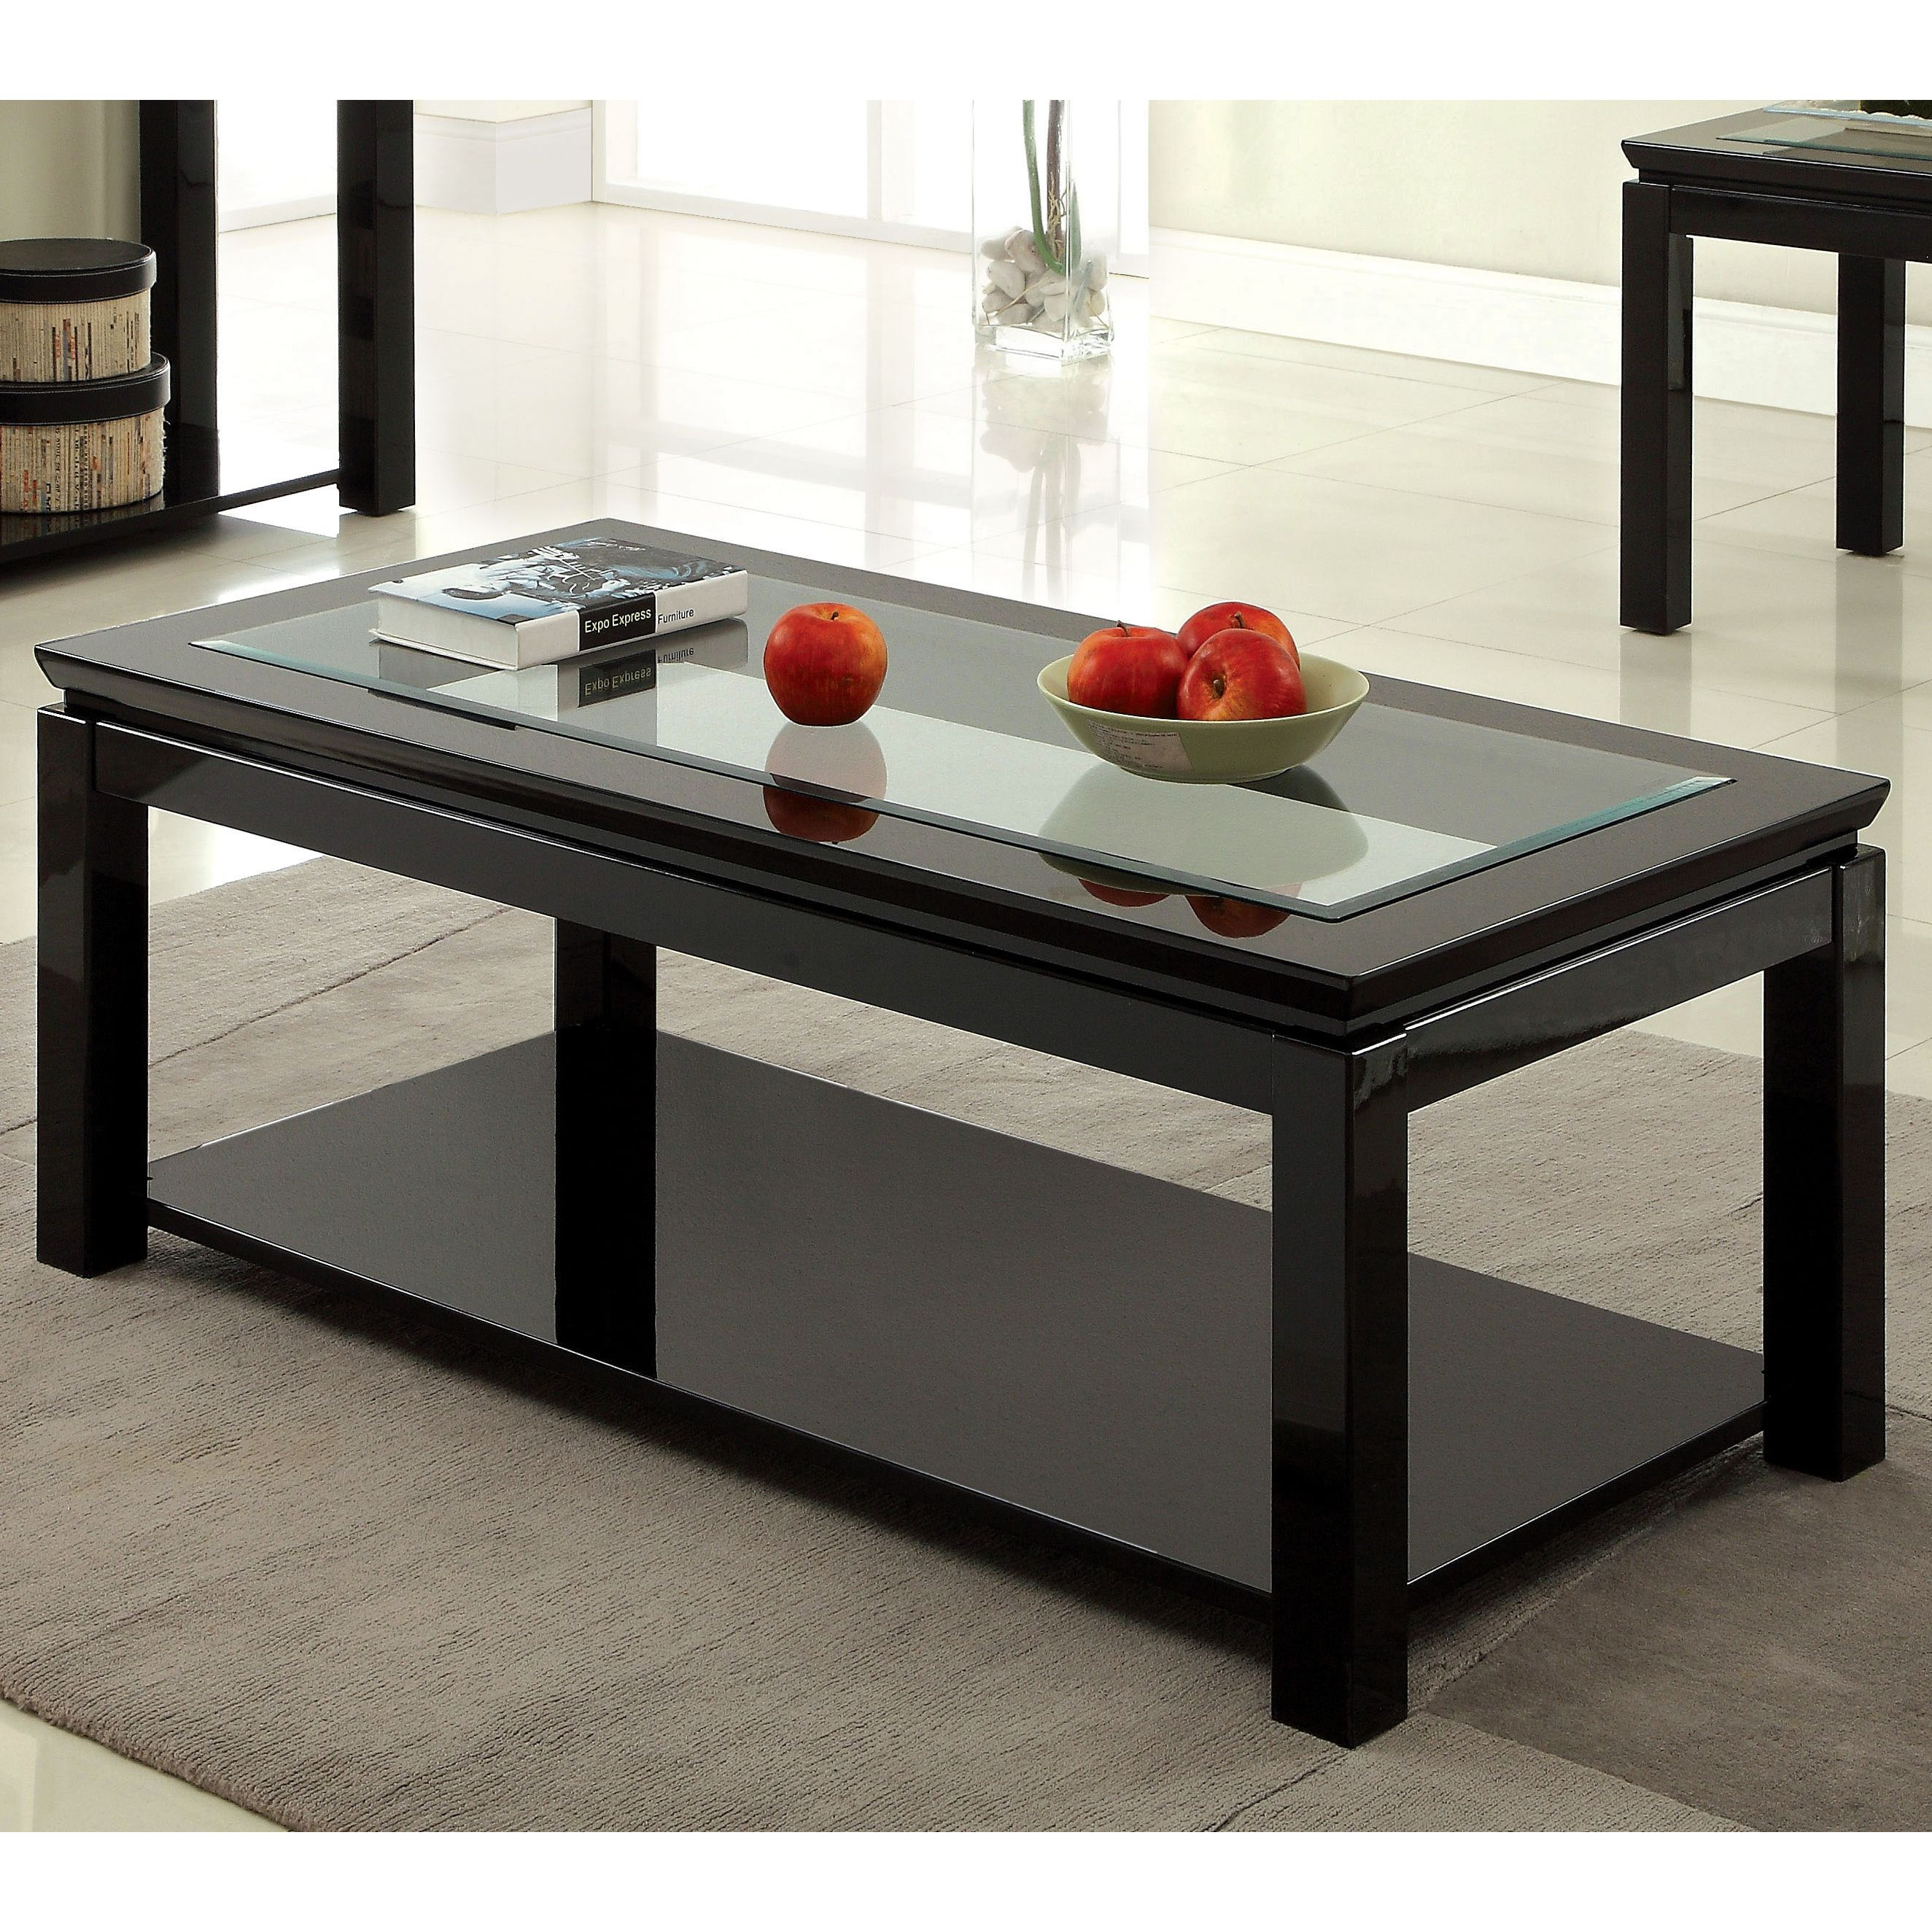 Our Best Living Room Furniture Deals Coffee Table Coffee Table Rectangle Glass Top Coffee Table [ 2649 x 2649 Pixel ]